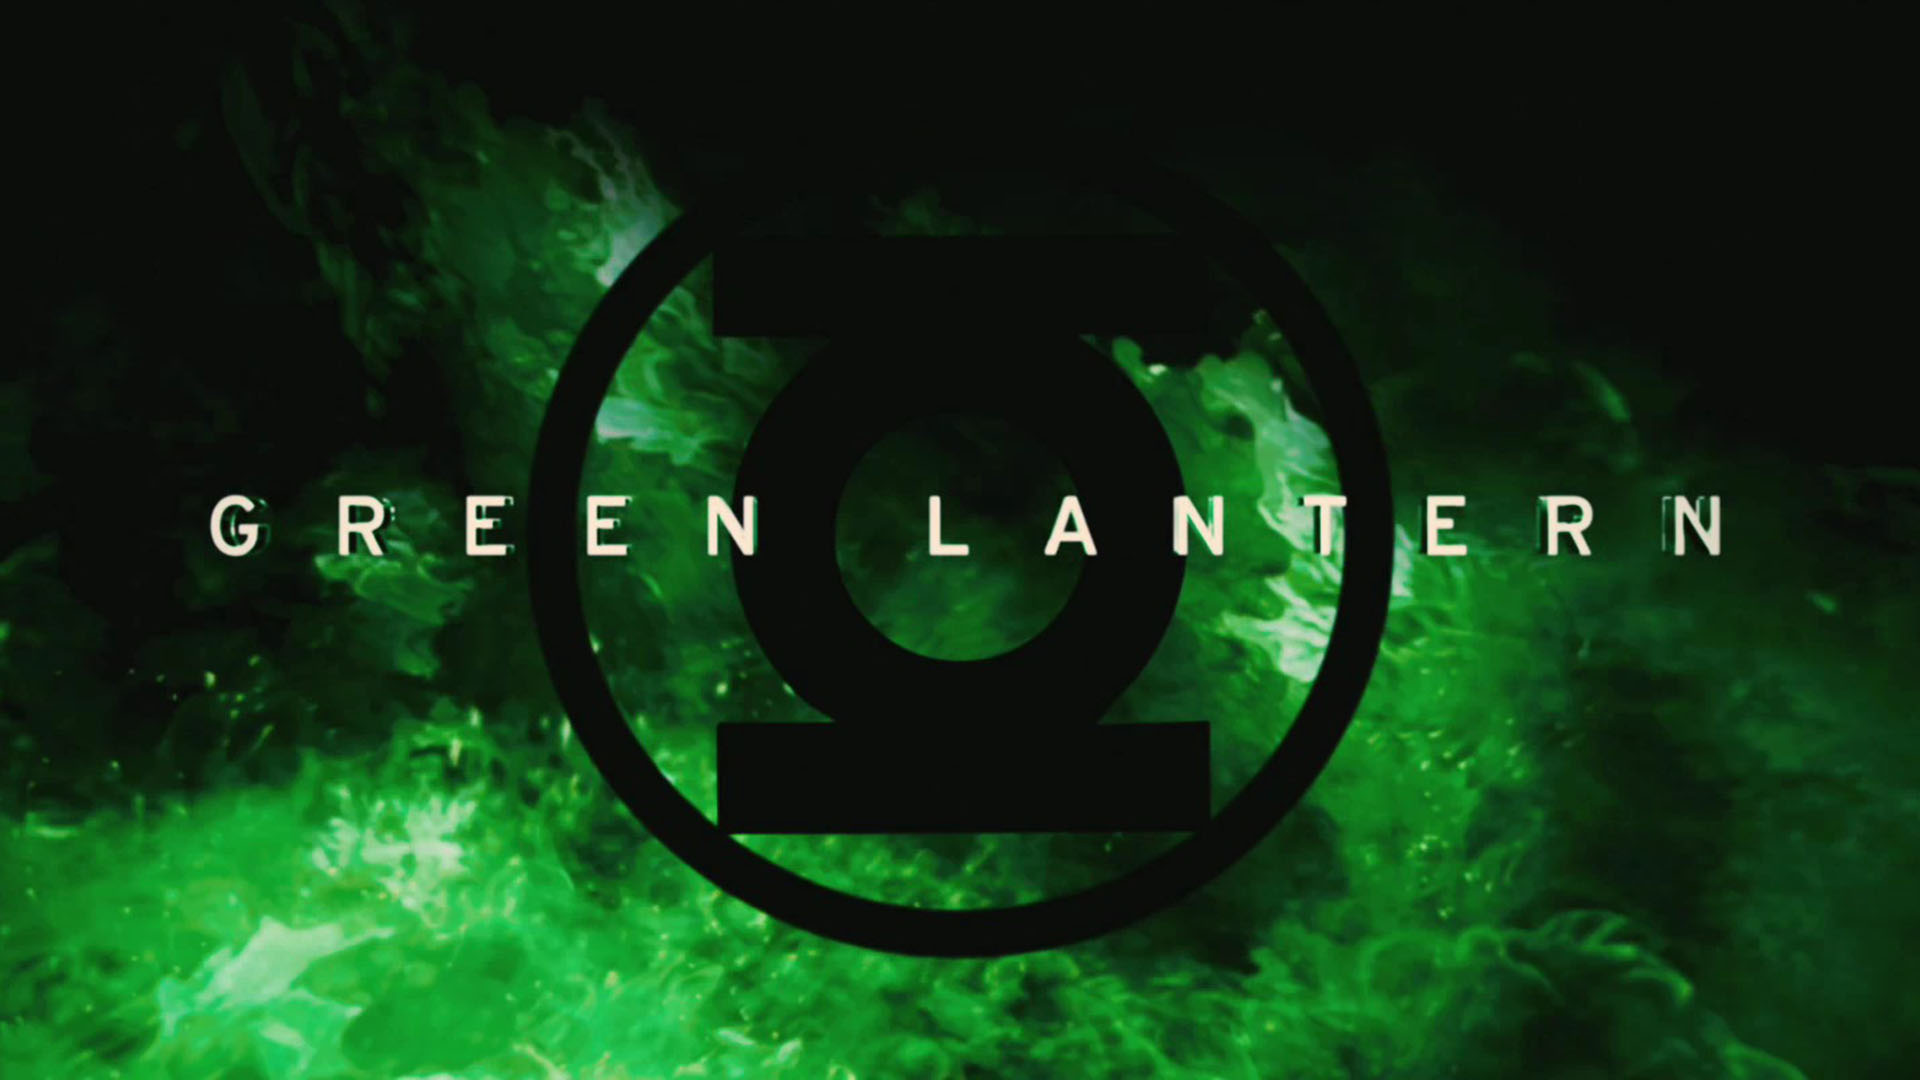 green lantern wallpapers   Quotekocom 1920x1080